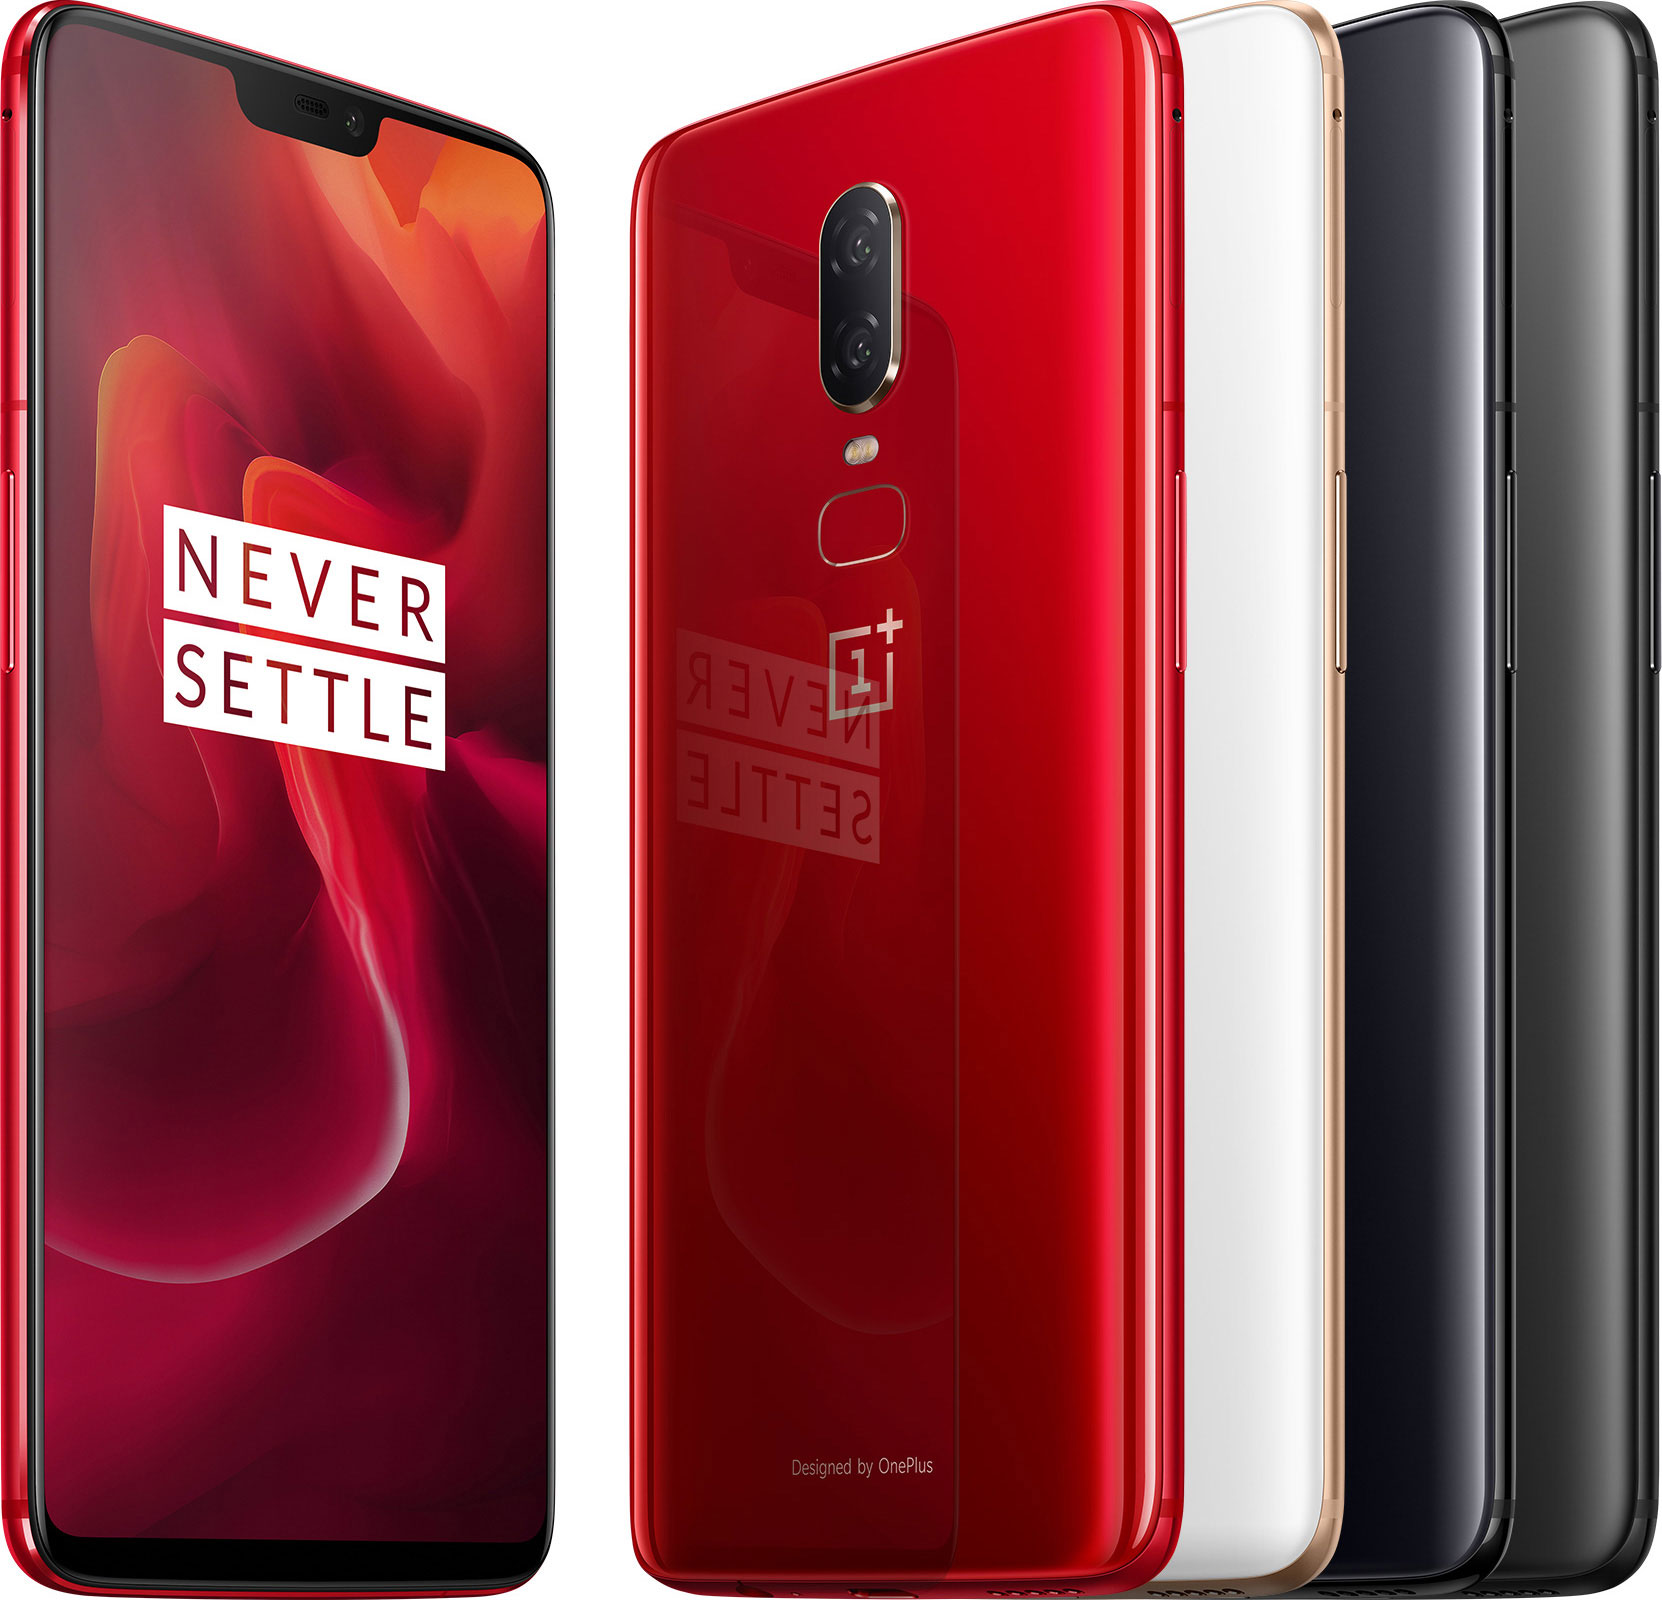 OnePlus 6T purportedly coming to T-Mobile this October ...